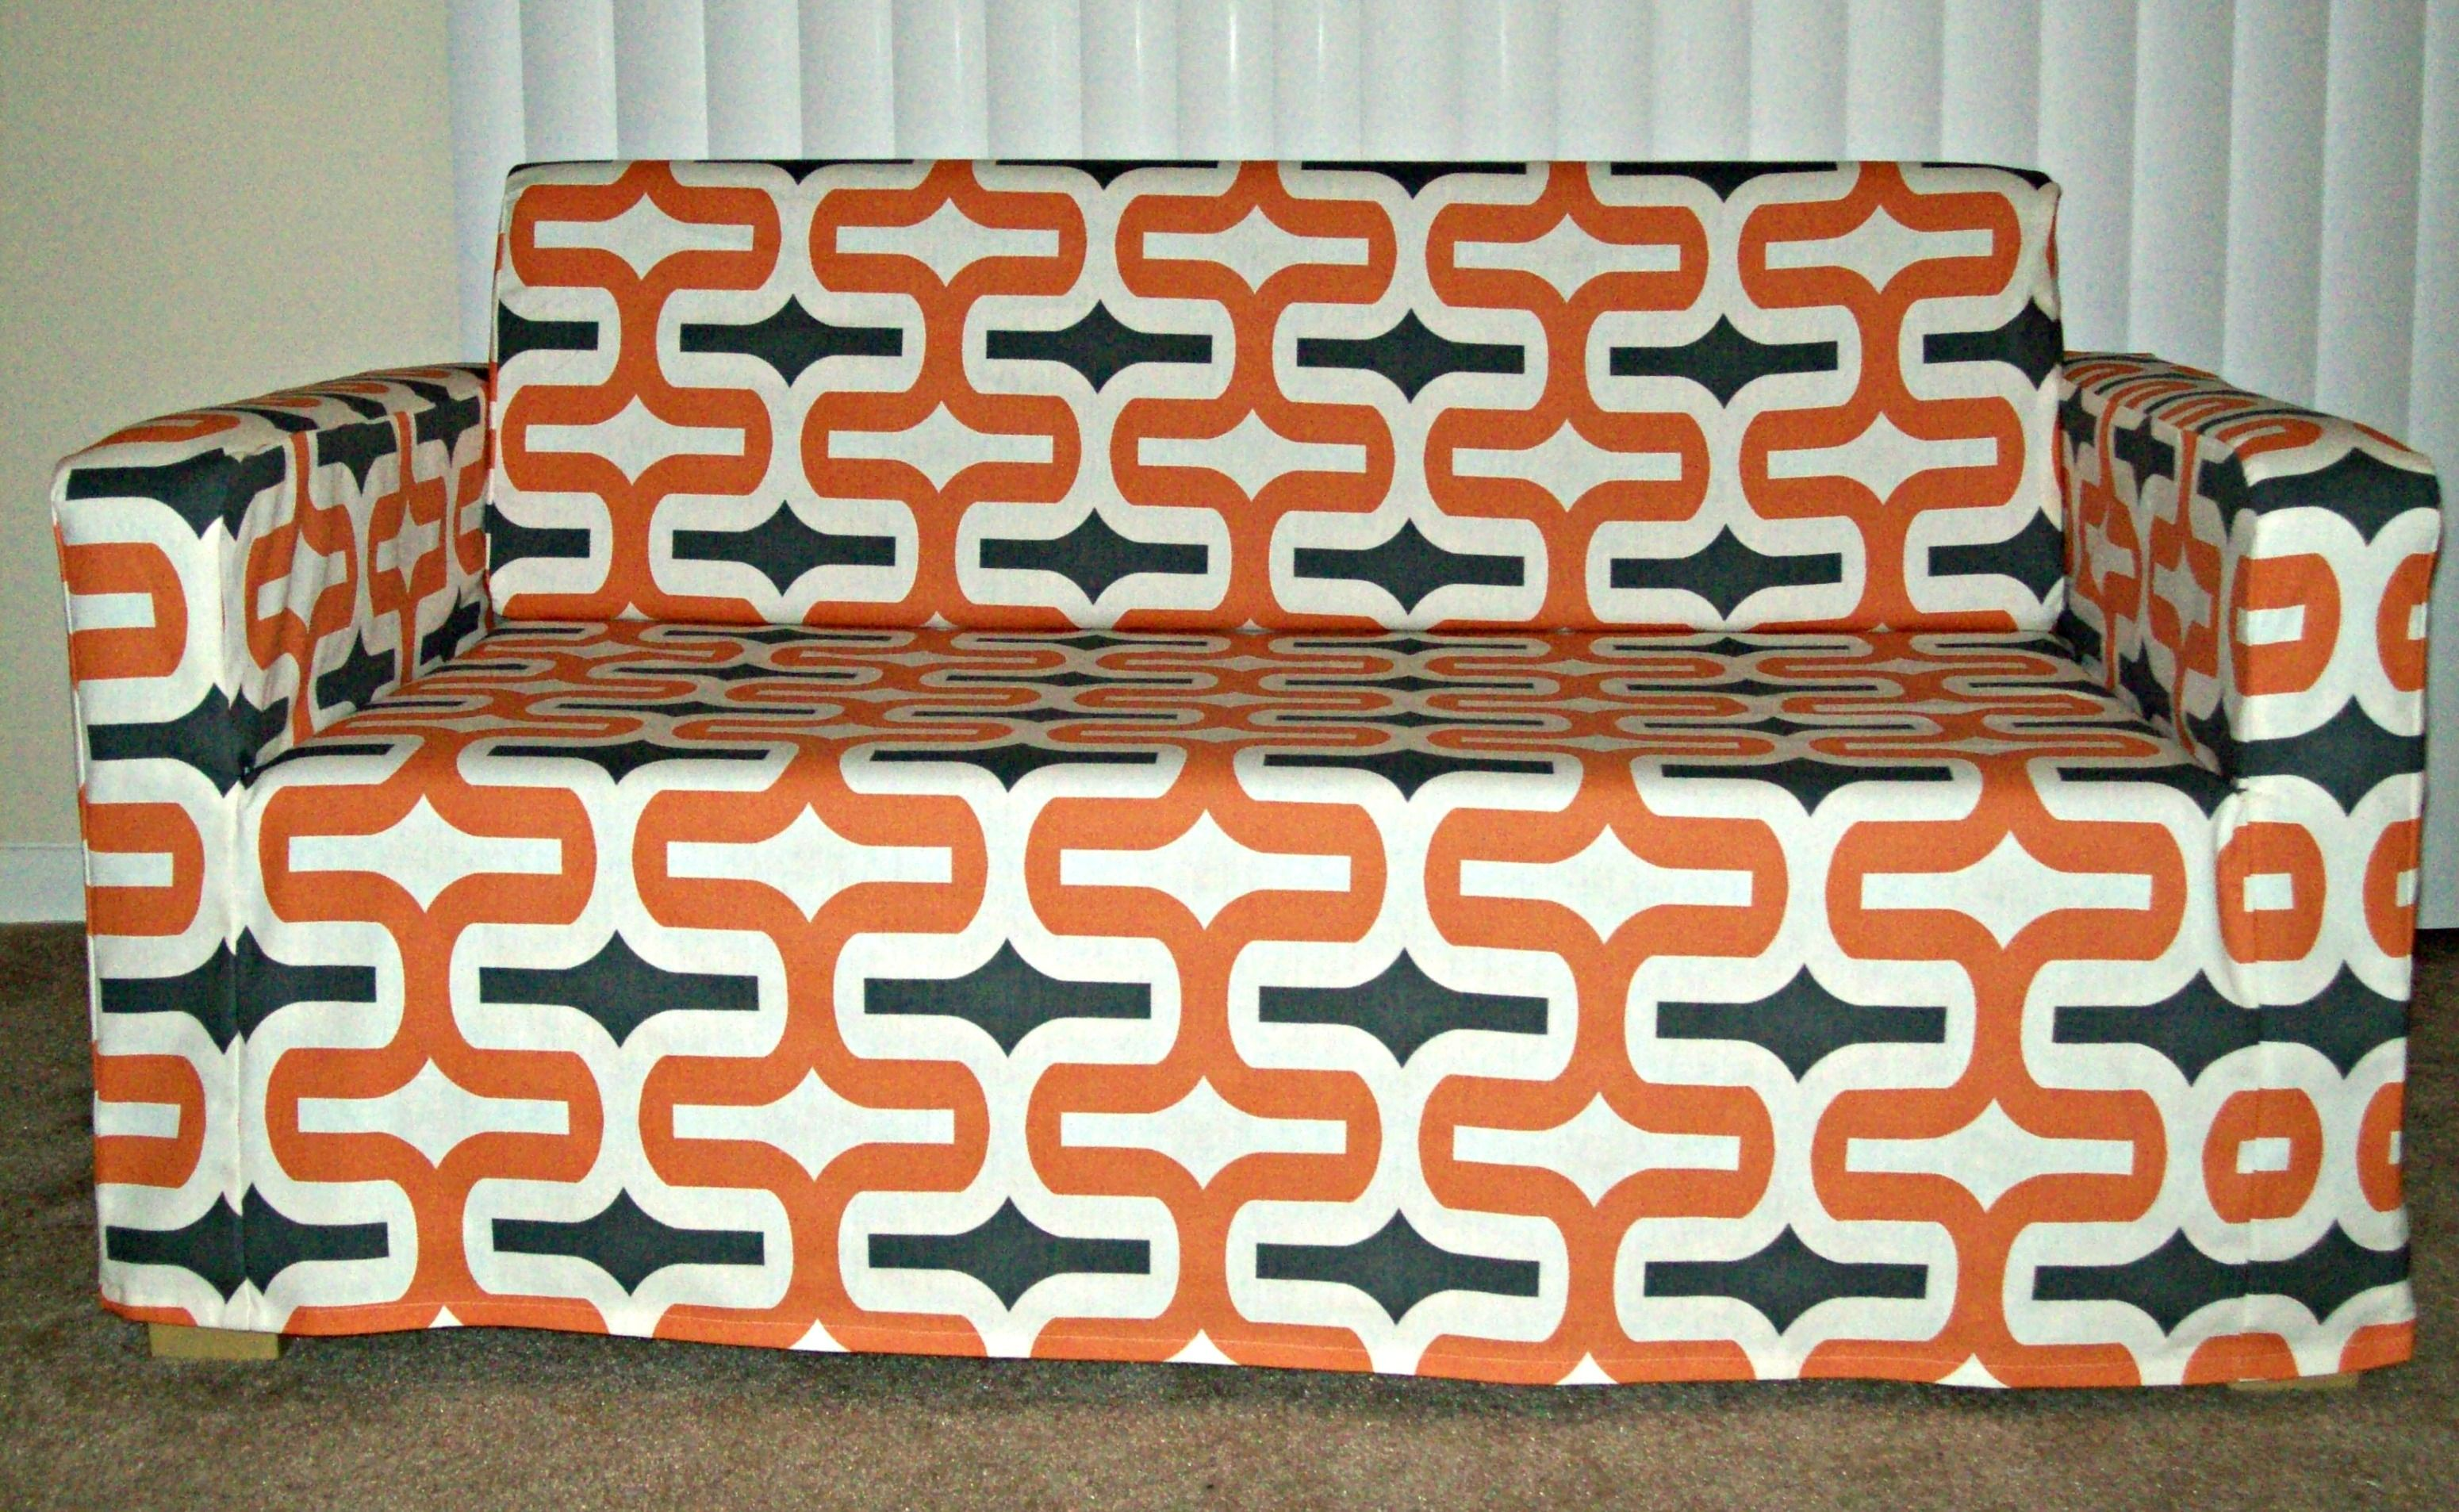 Custom cover made by Roozimsy for the IKEA Solsta Sofa Bed in